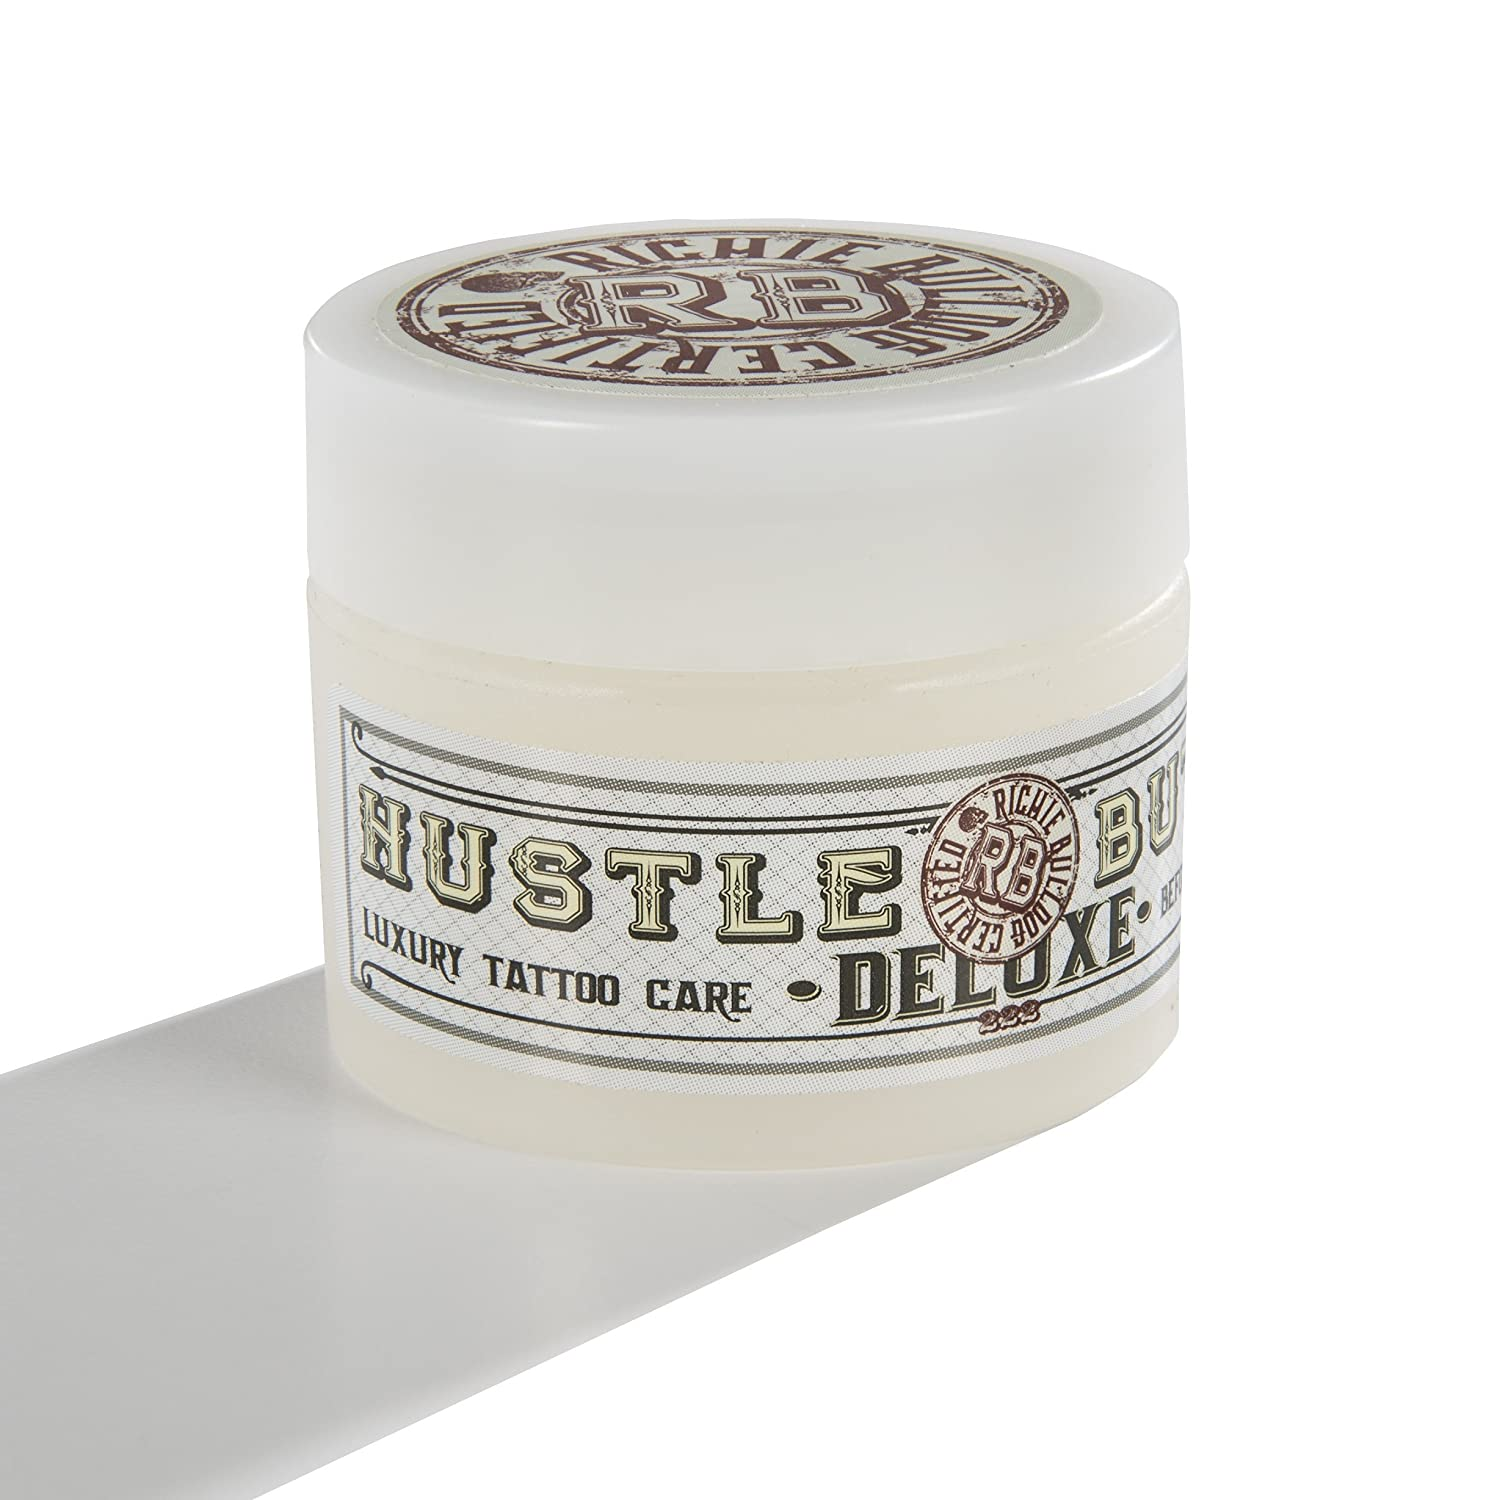 Hustle Butter Deluxe - Vegan Tattoo Care - 30ml (1oz) Tub HB-361-1OZ